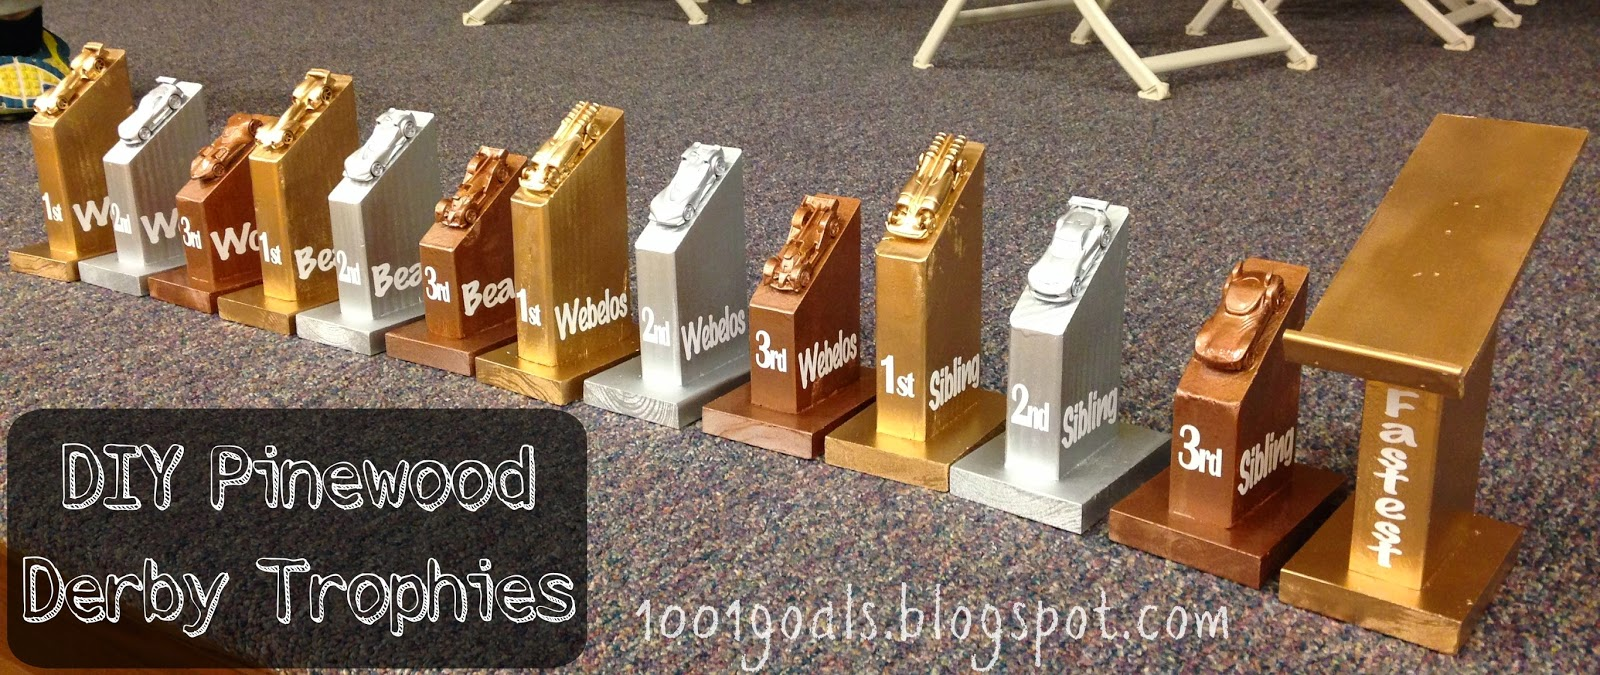 Diy Pinewood Derby Trophies - Diy pinewood derby trophies and awards